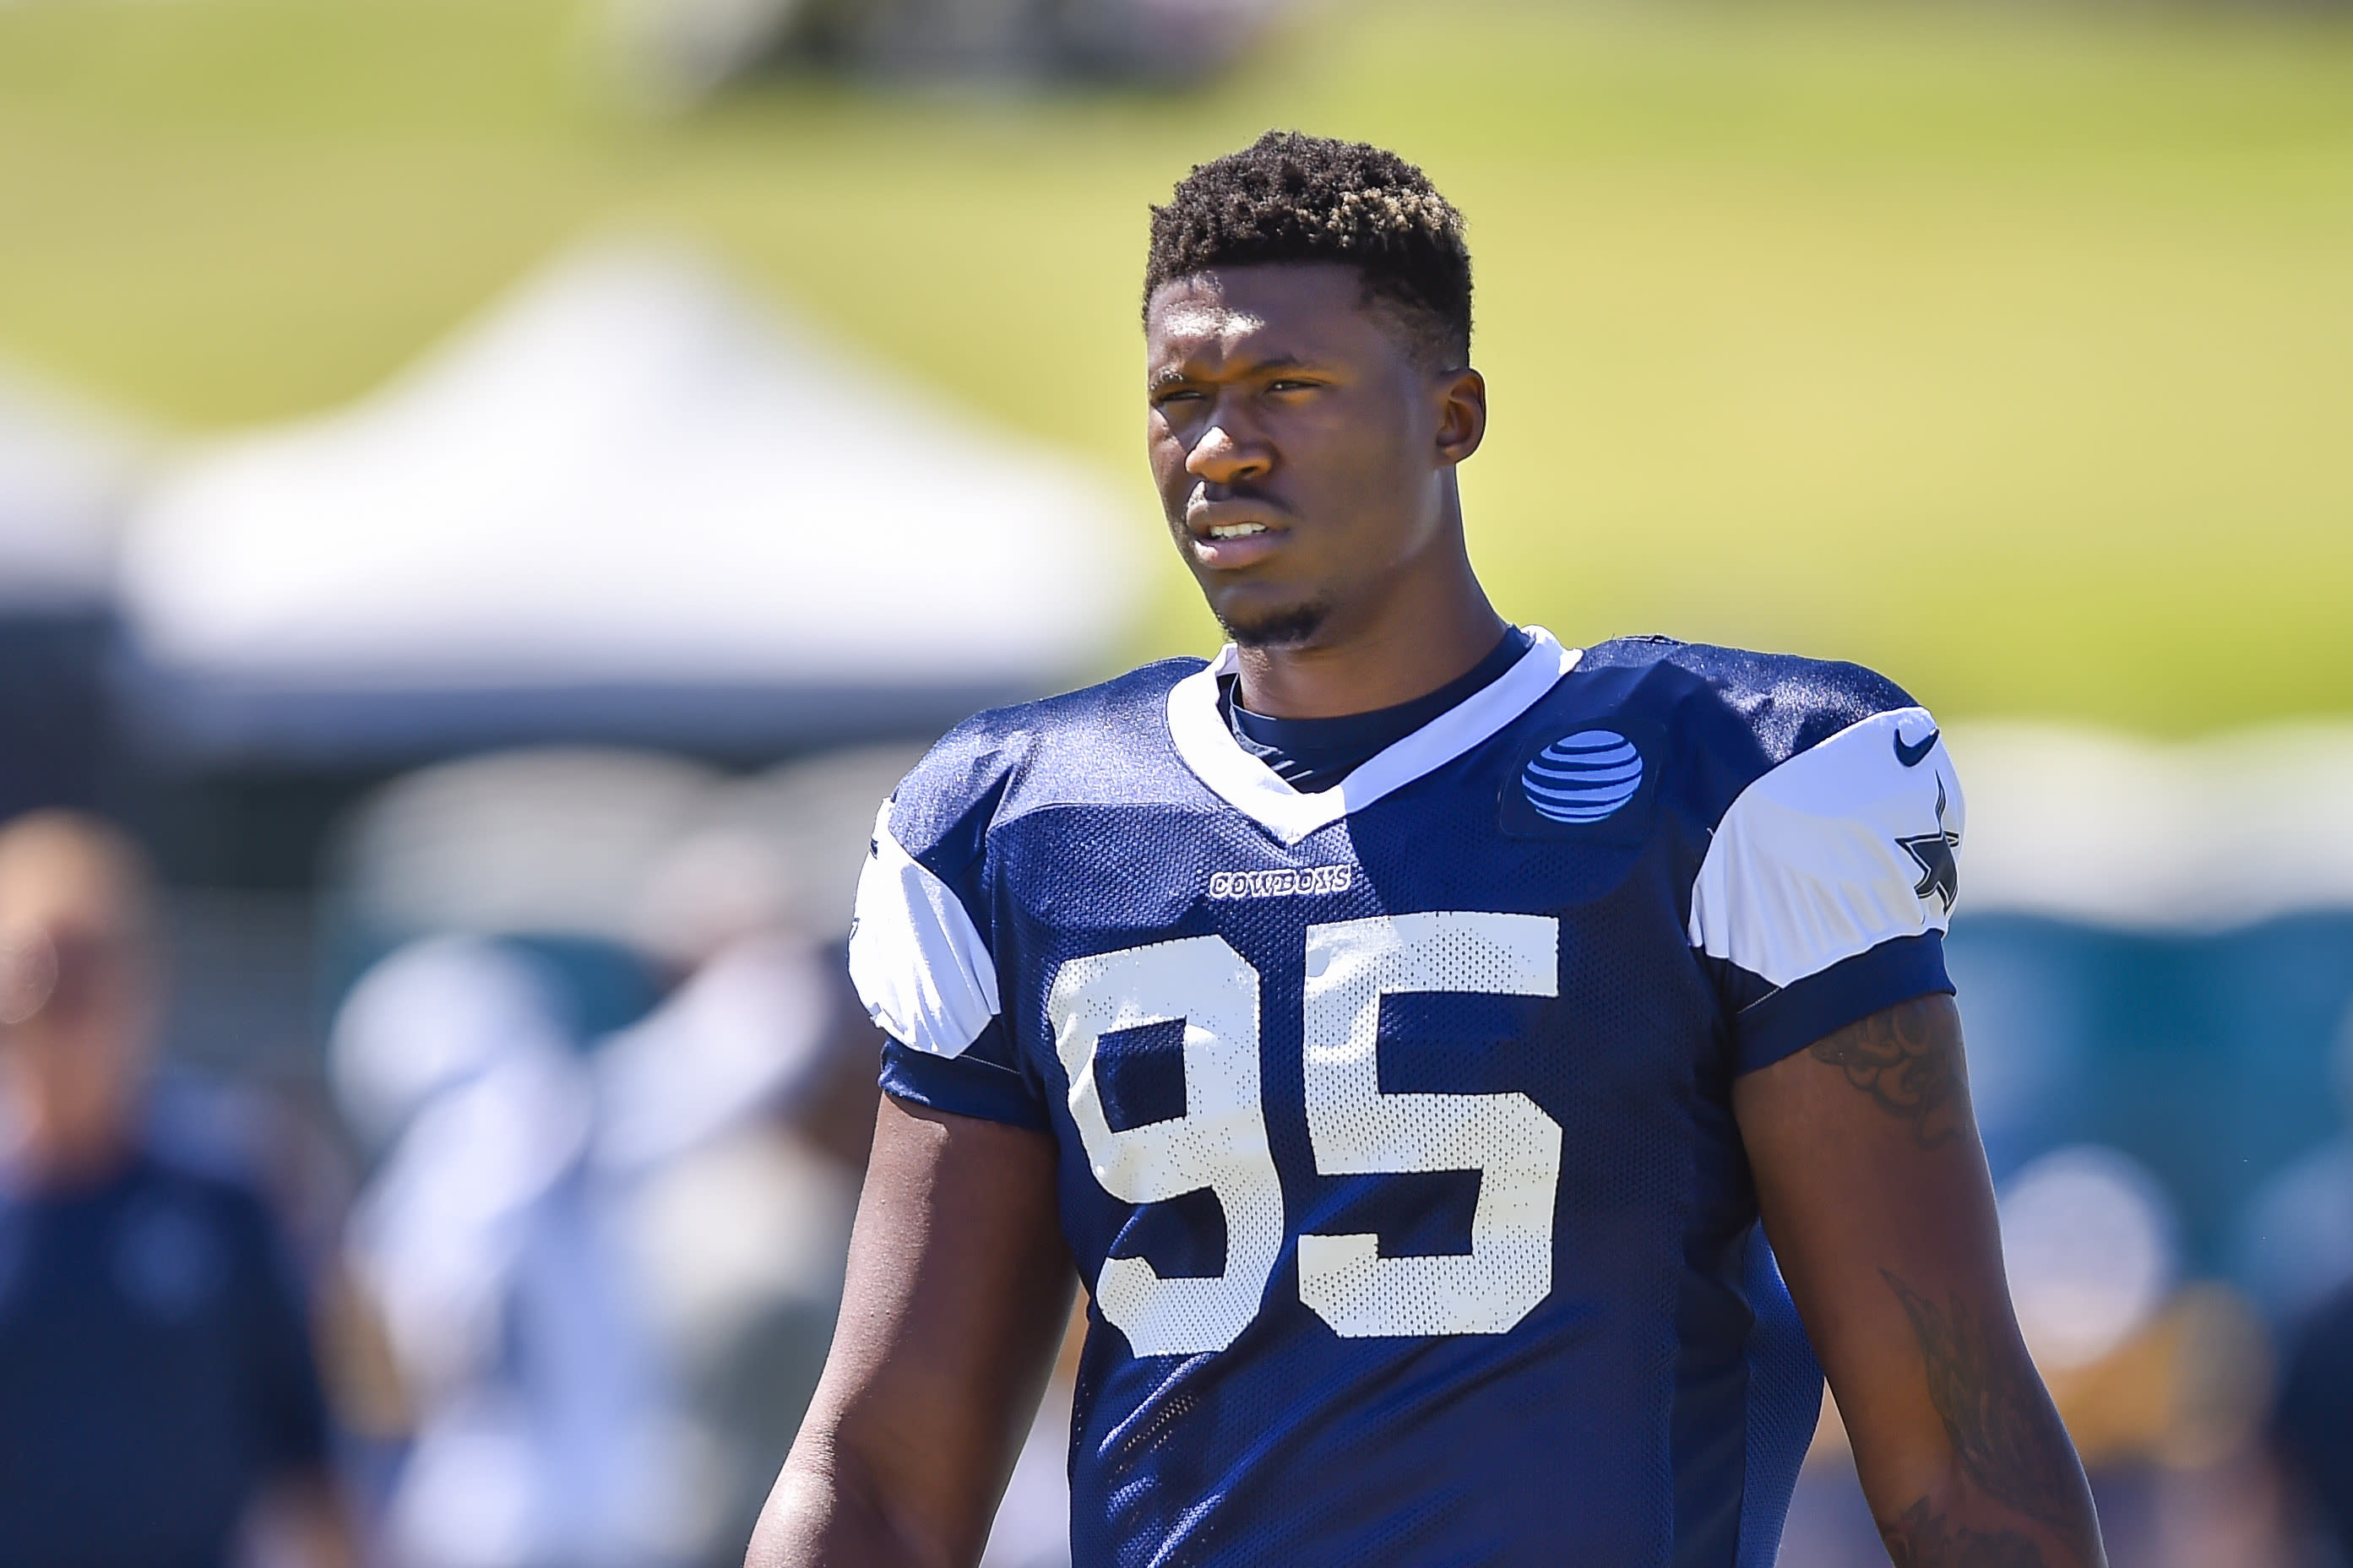 David Irving investigated for domestic violence; girlfriend retracts allegations made on Twitter, to police